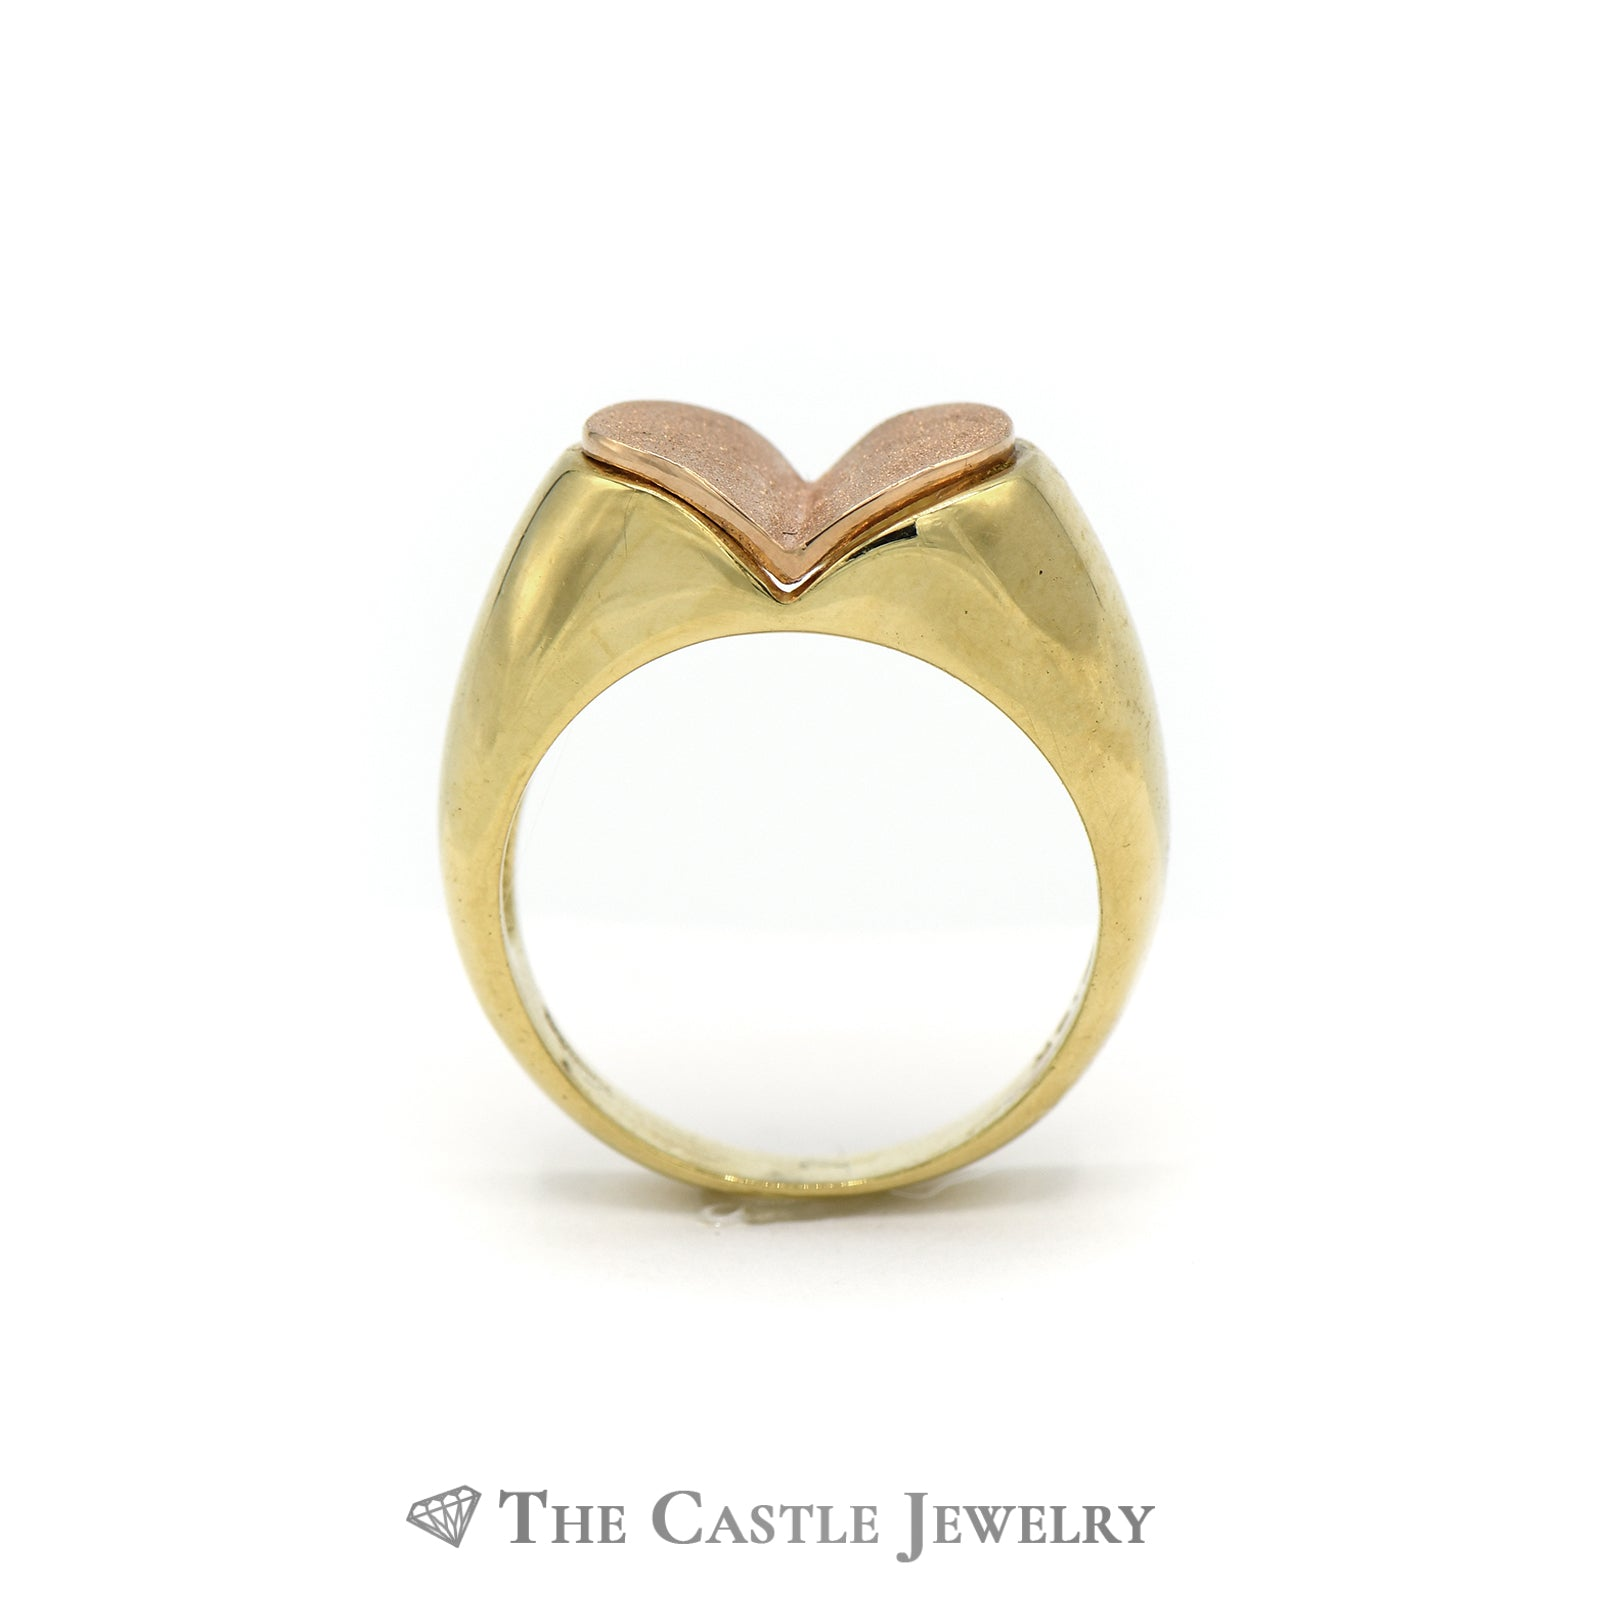 Unique Satin Finish Two Toned Heart Ring in 18K Yellow and Rose Gold-1